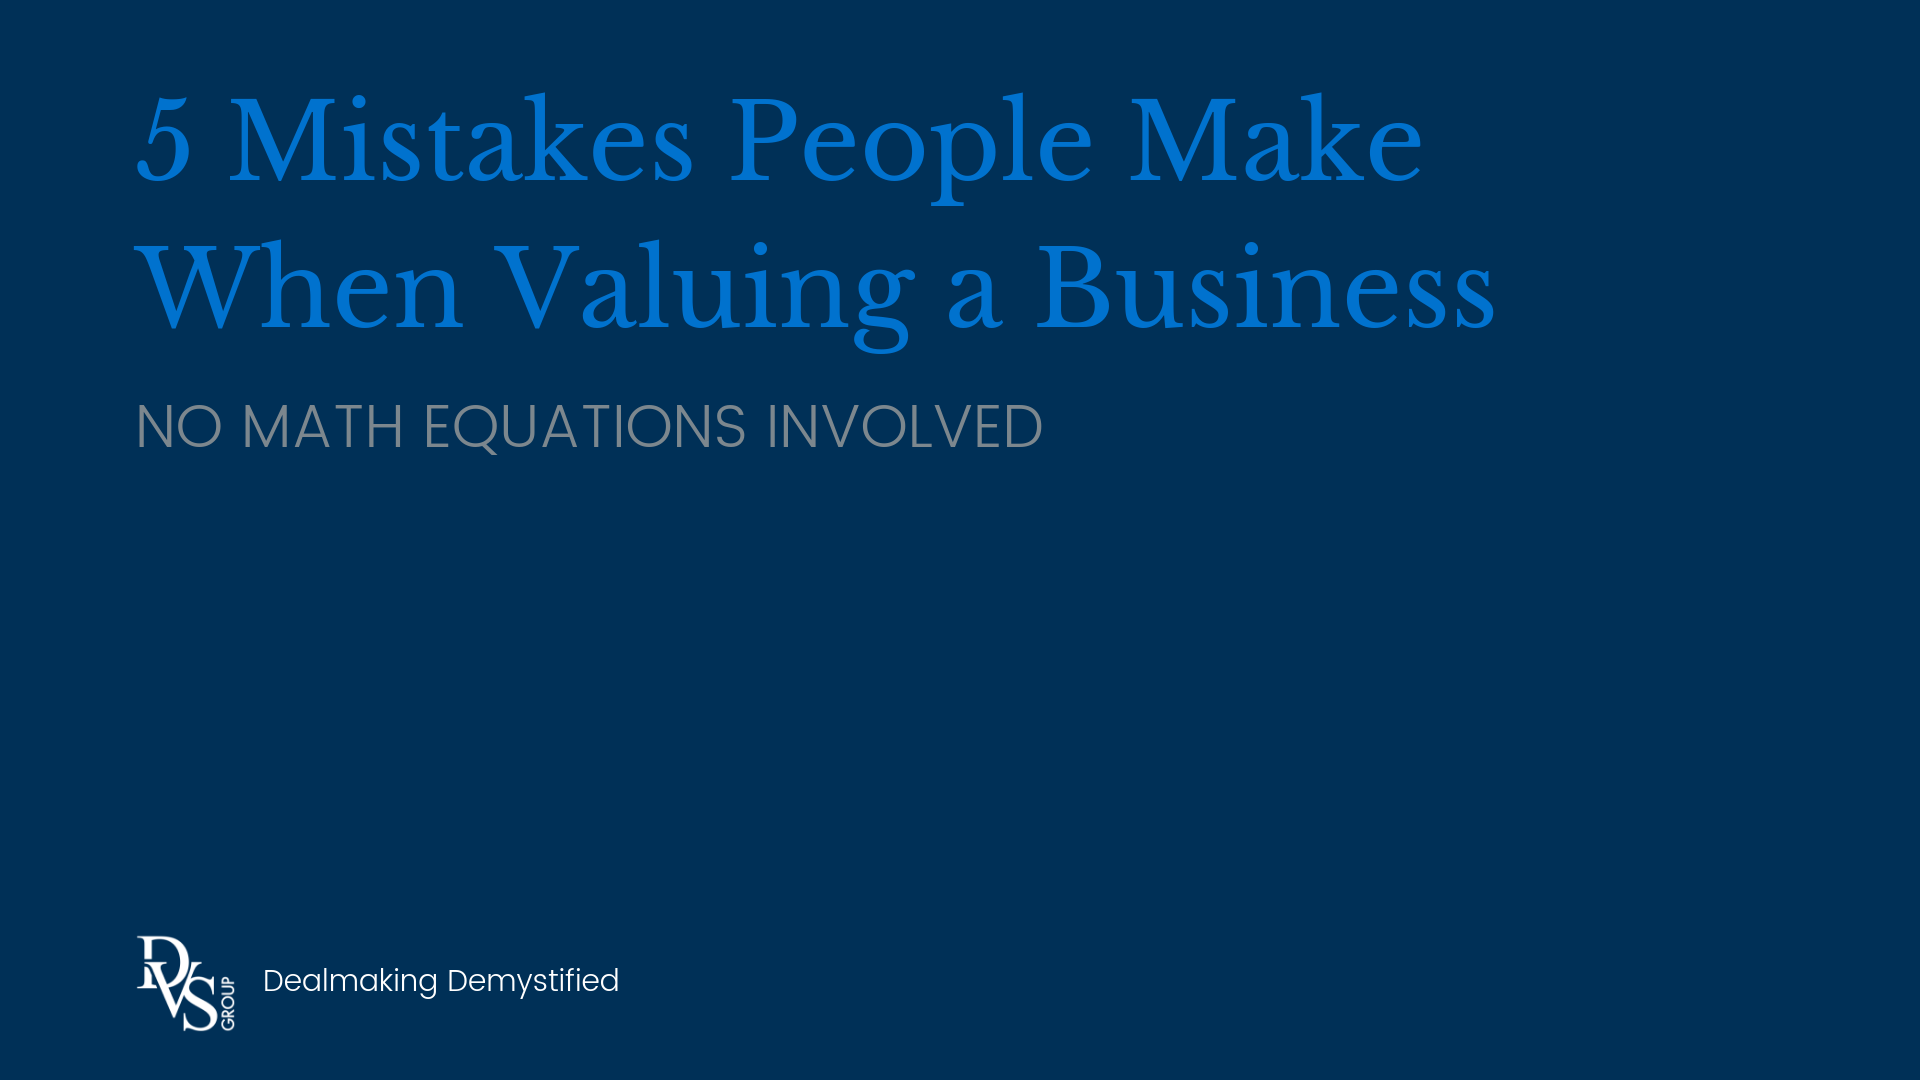 5 Mistake People Make When Valuing a Business